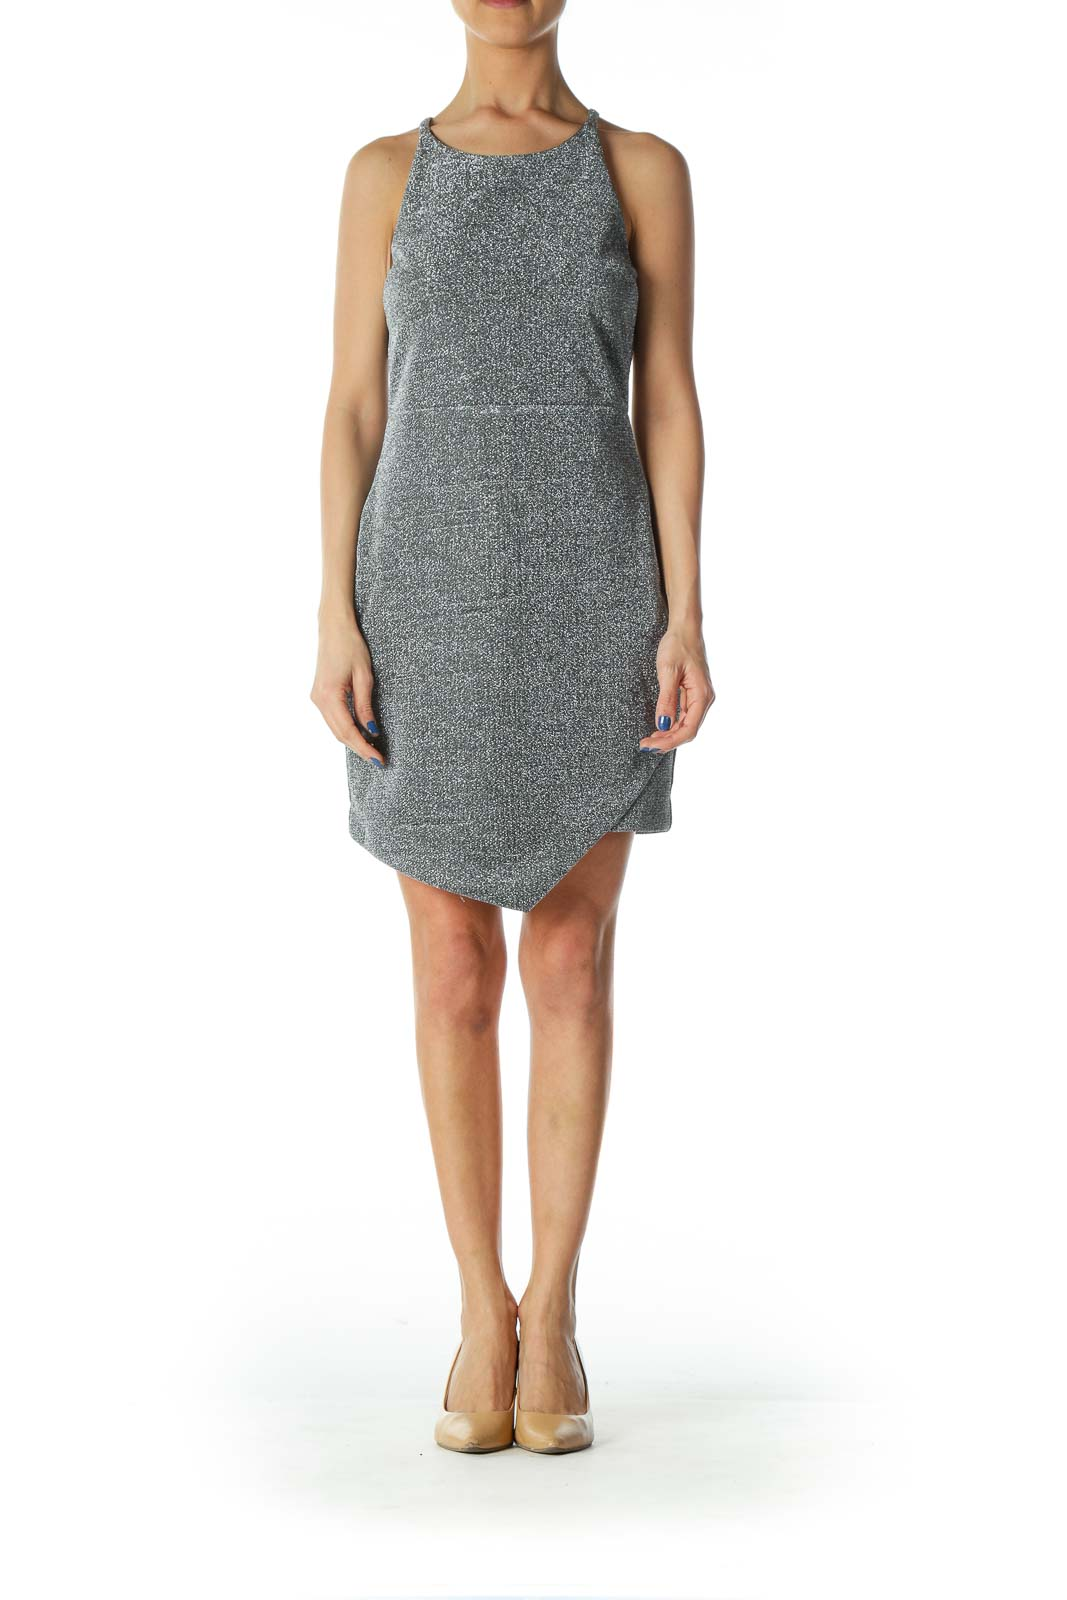 Silver Metallic Textured Cocktail Dress